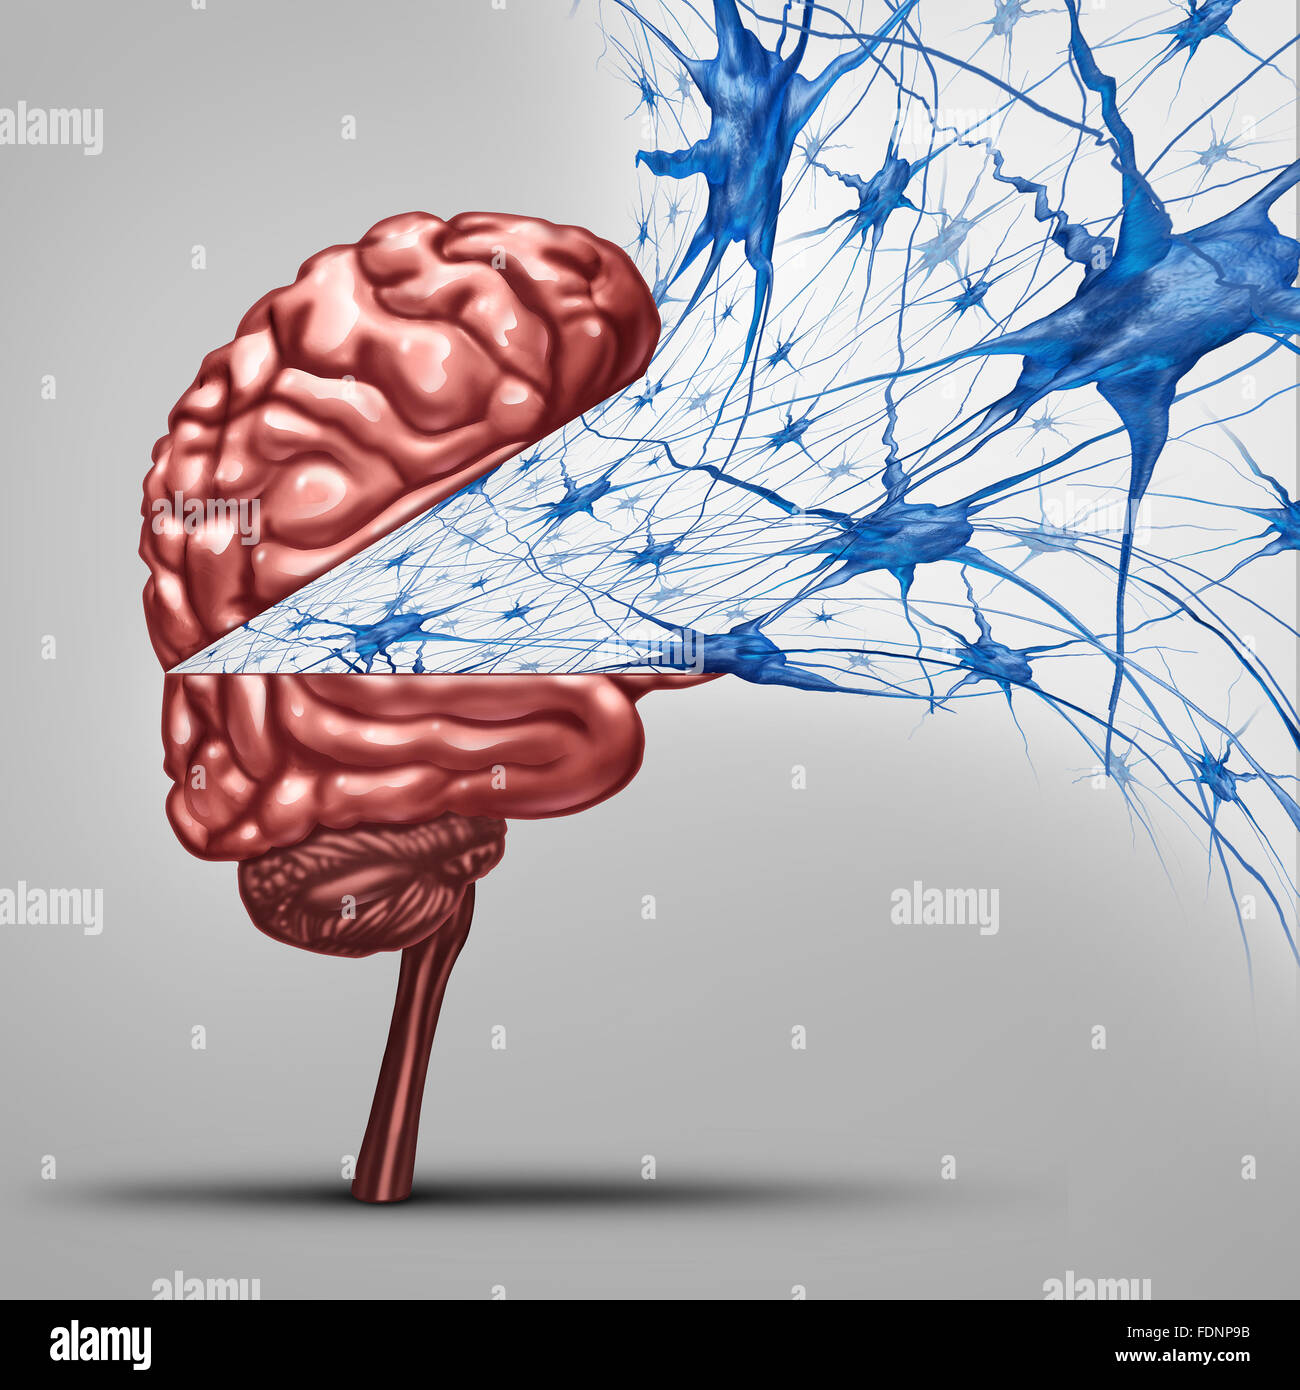 Brain neurons concept and human intelligence medical symbol represented by an open thinking organ with active neuron - Stock Image